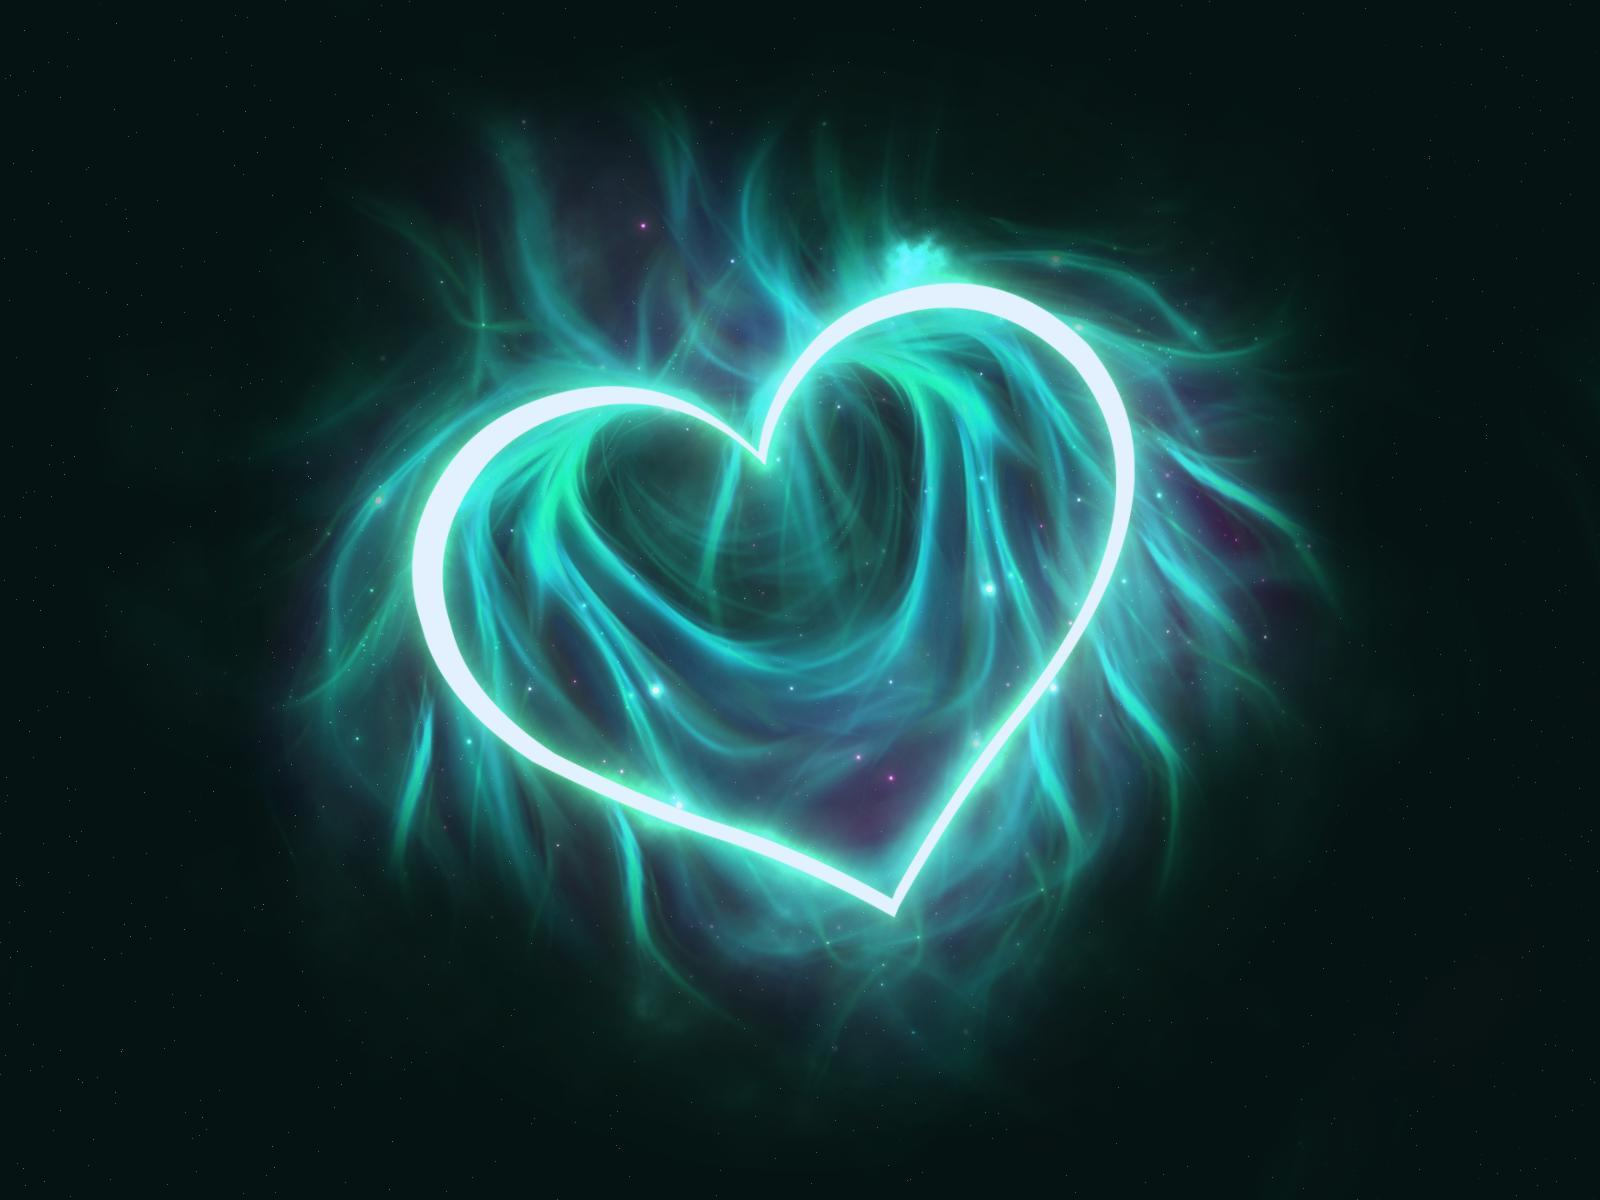 Blue Heart Wallpapers - Wallpaper cave